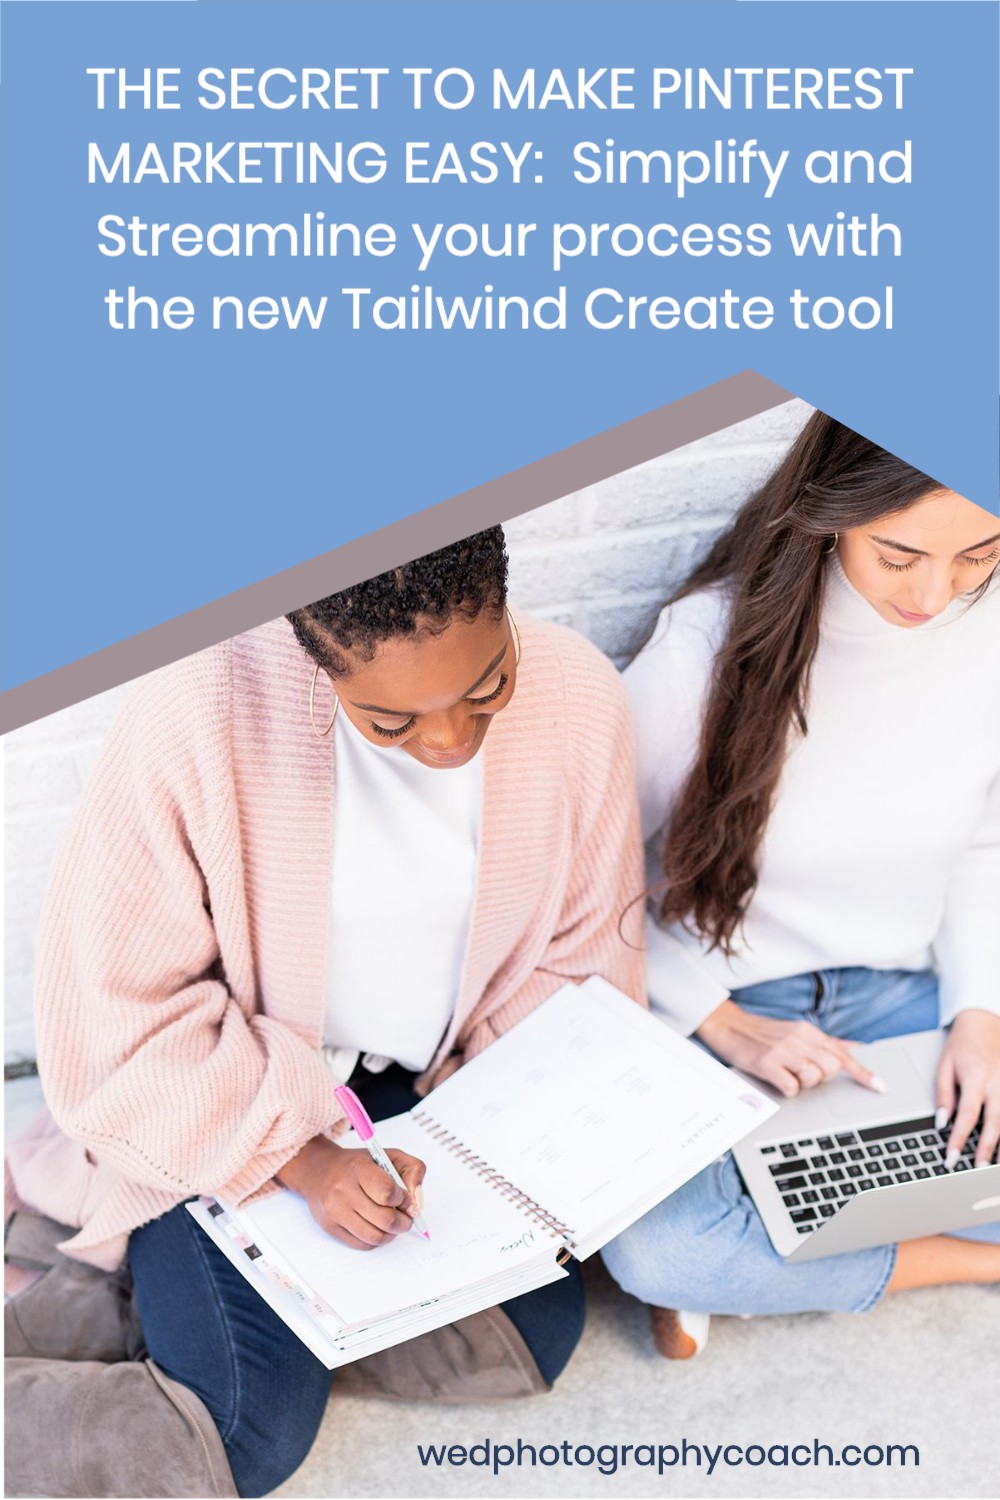 Simplify and Streamline your process with the new Tailwind Create.